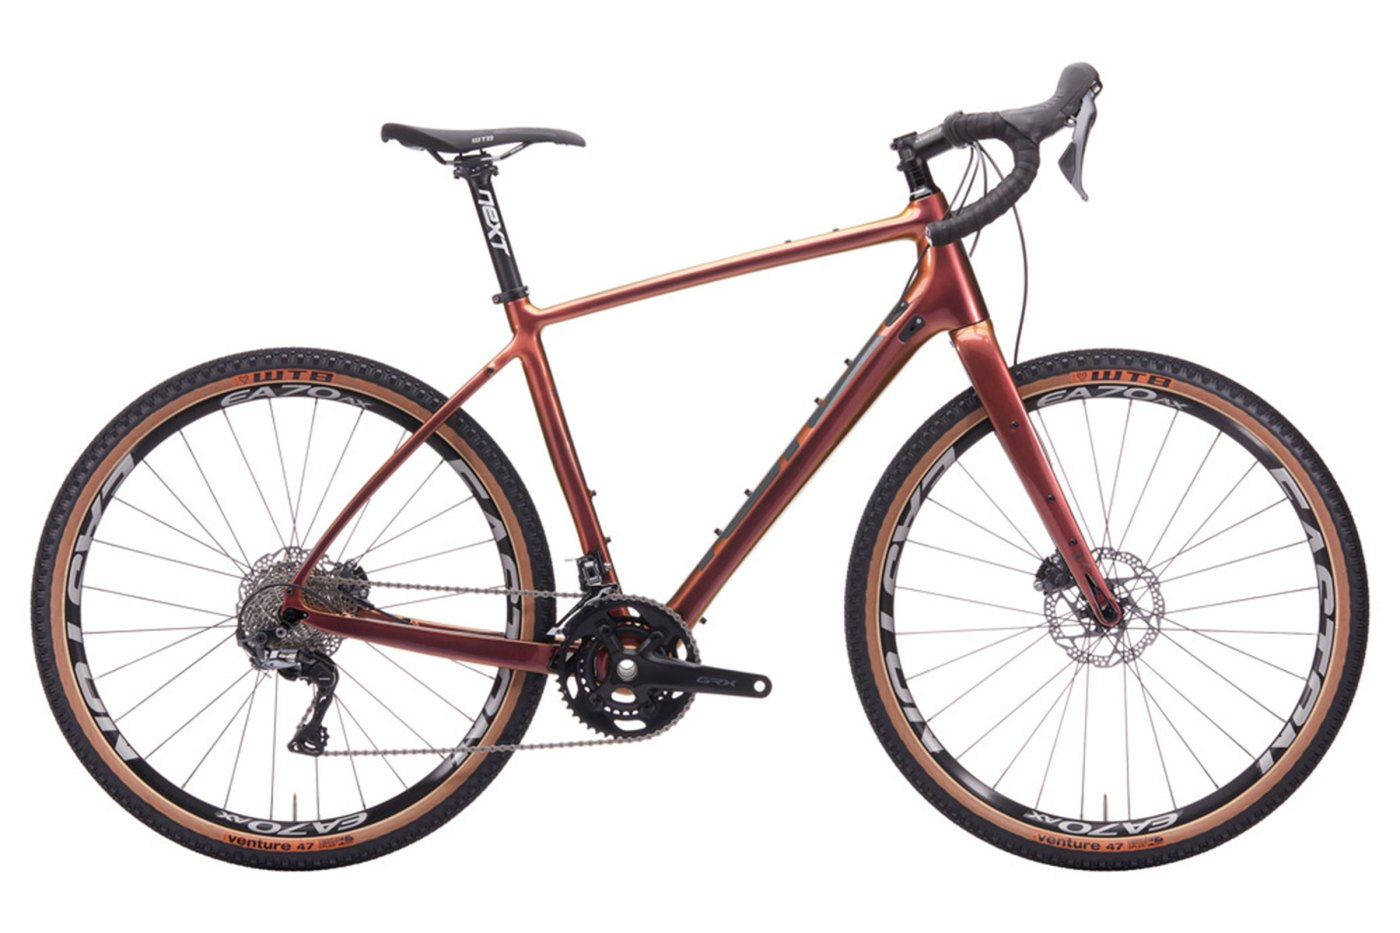 2020 Kona Libre DL Updates to 650b and 2×11 Shimano GRX 3